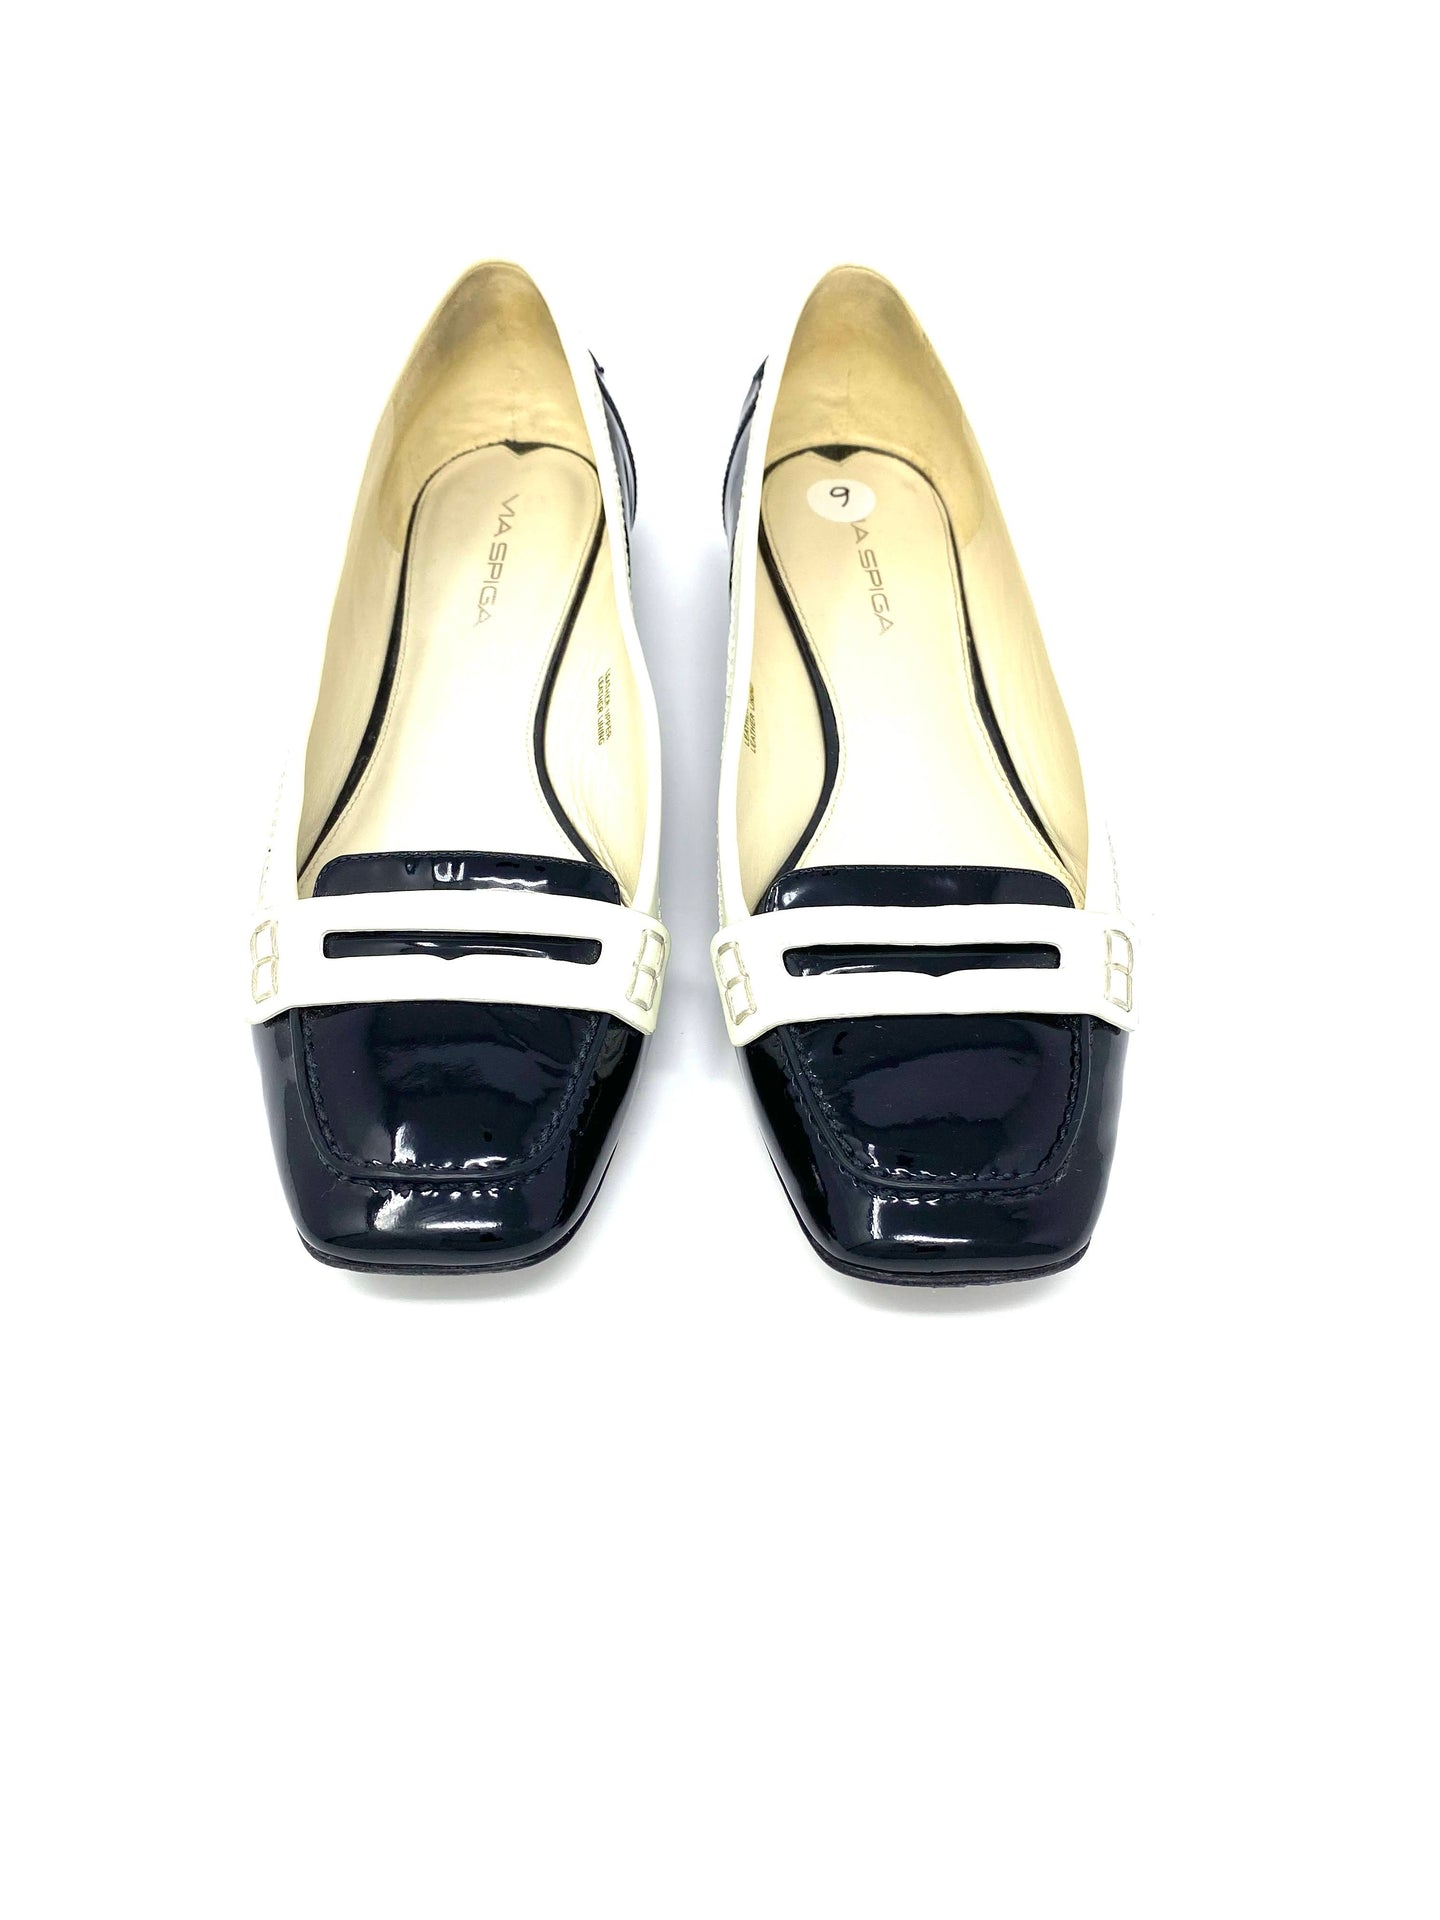 Black And White Via Spiga Flats, 9